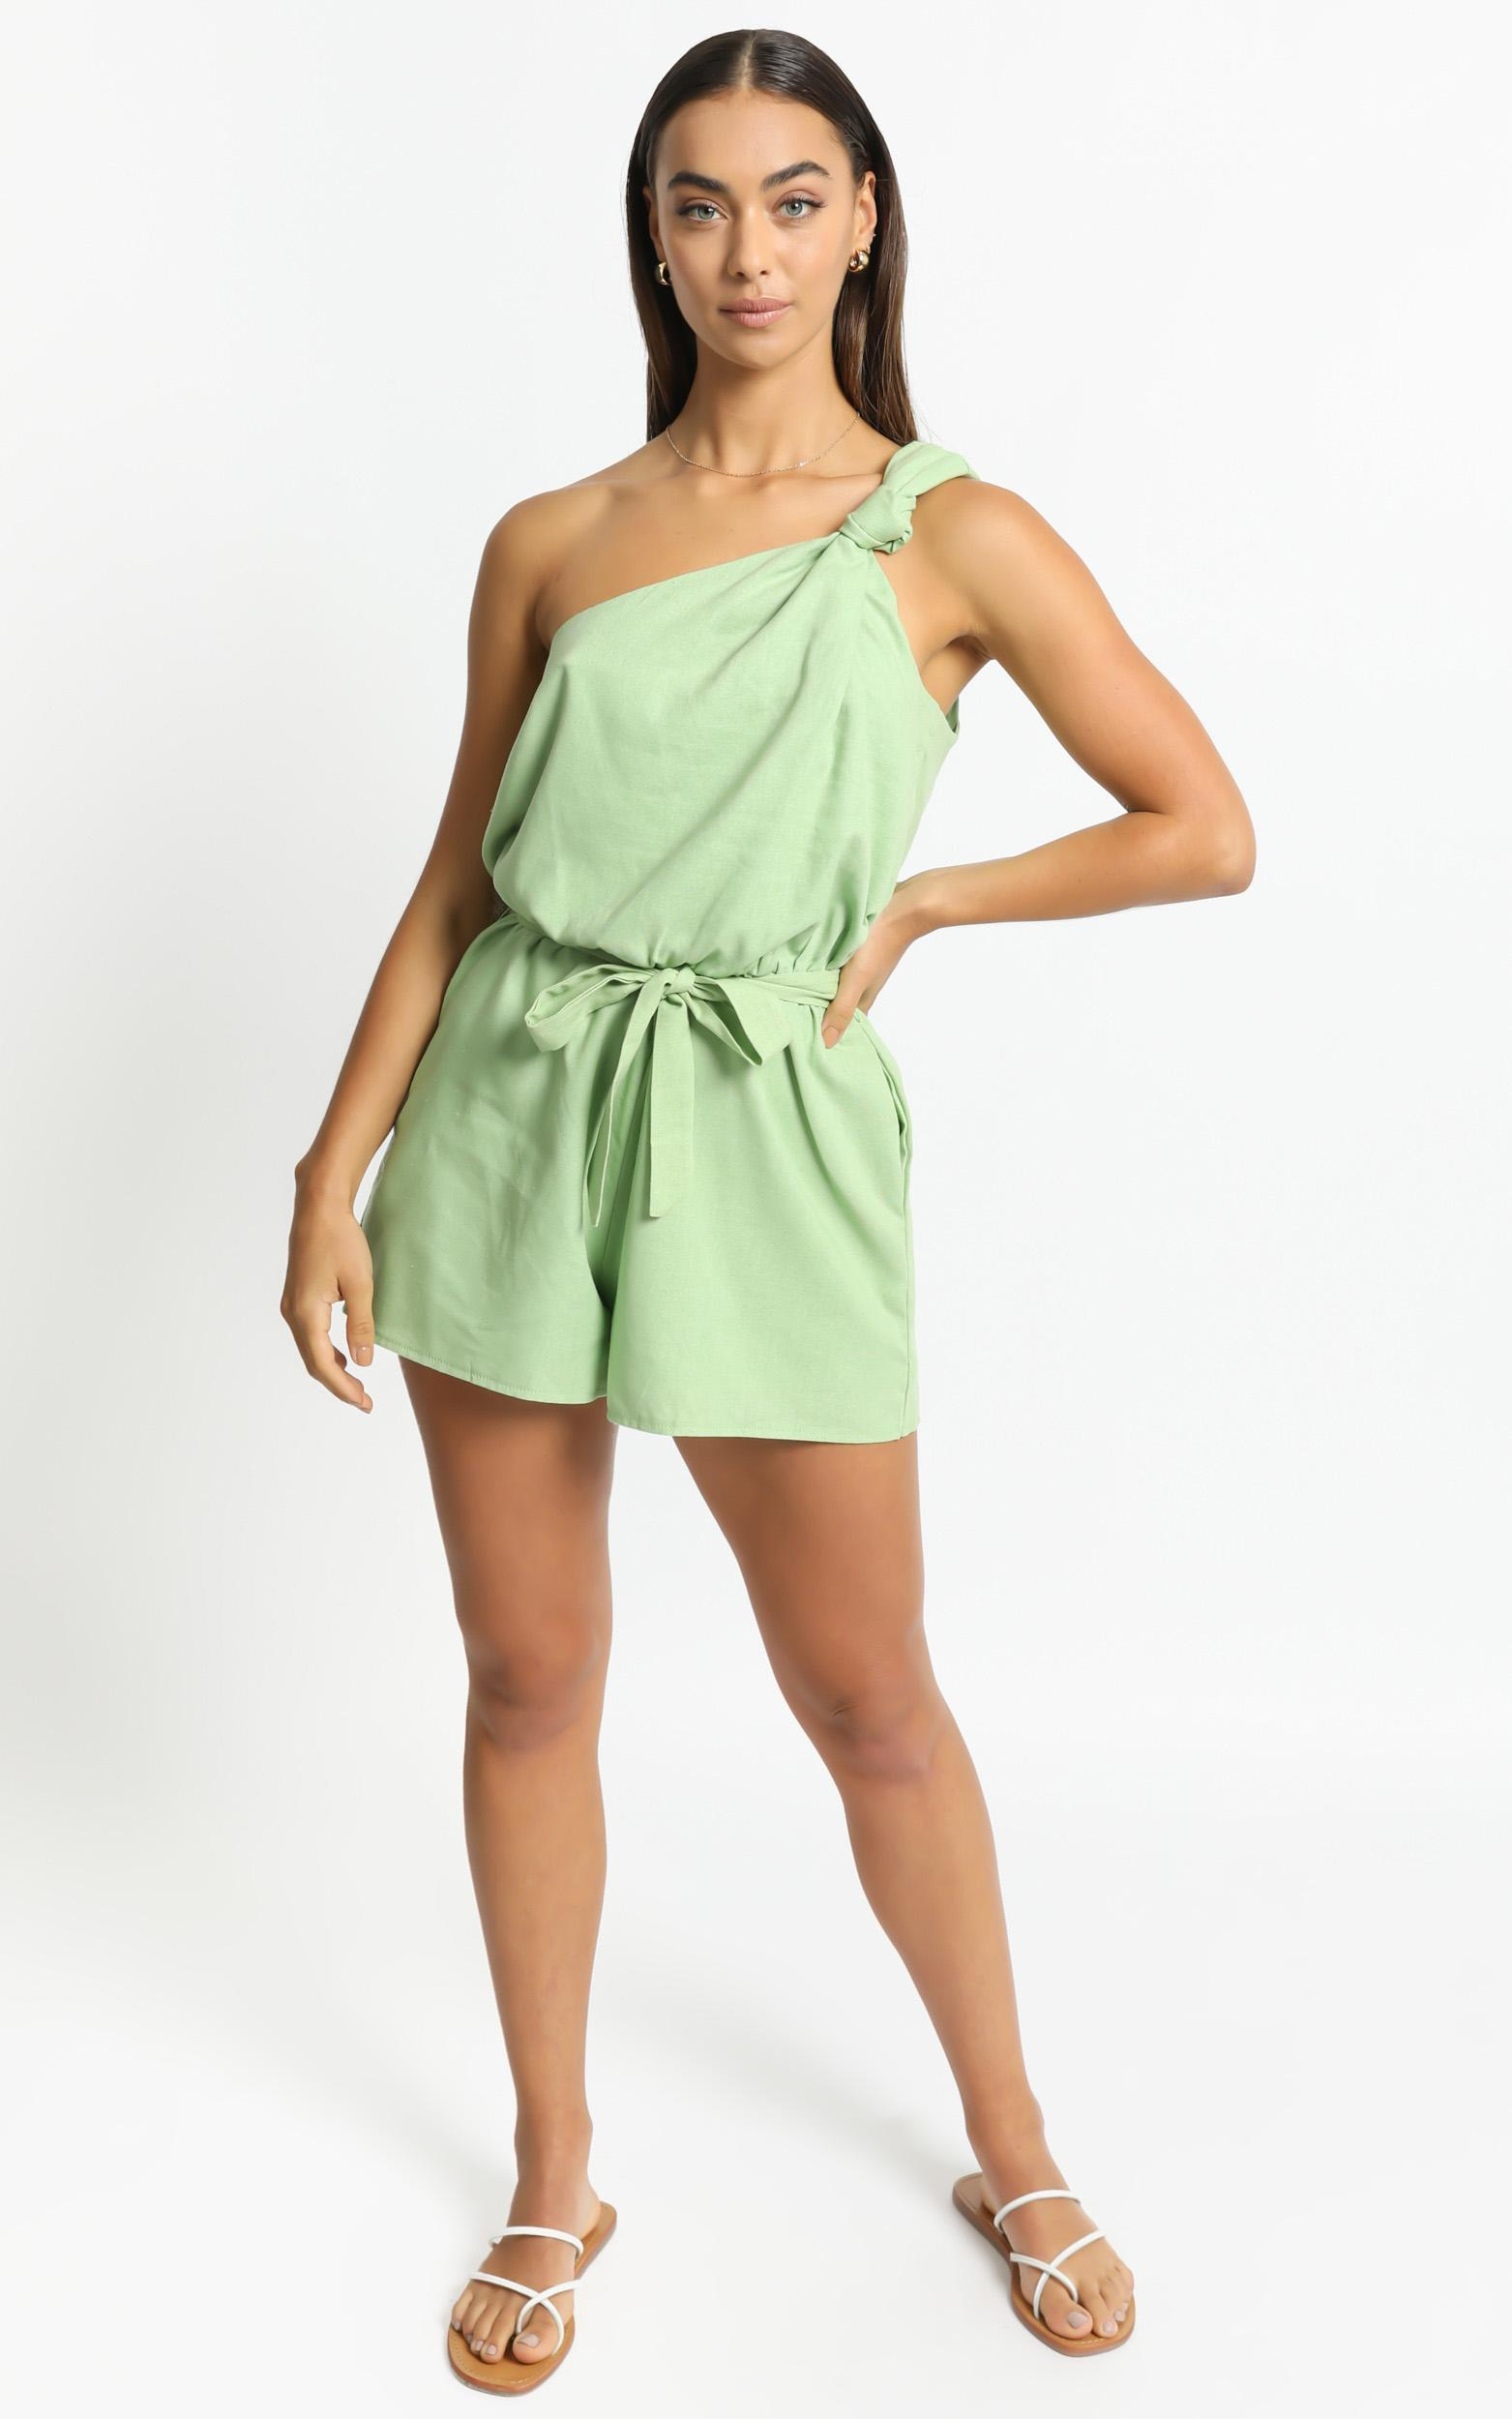 Armelle Playsuit in Green - 6 (XS), Green, hi-res image number null